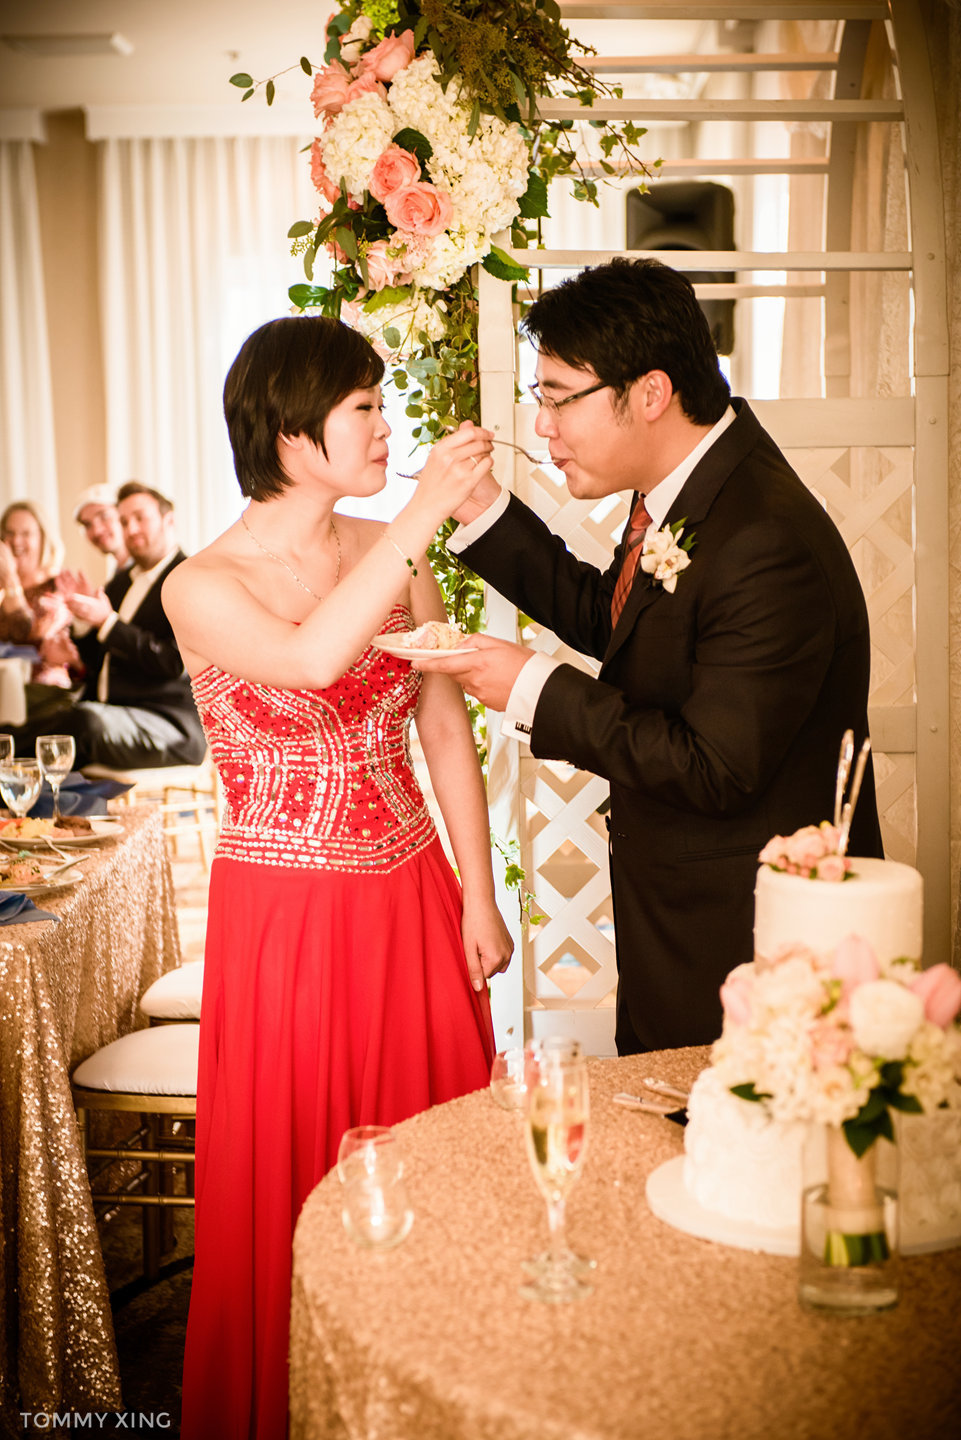 Los Angeles Chinese Wedding Photographer WAYFARERS CHAPEL Tommy Xing 洛杉矶婚礼婚纱摄影 195.jpg